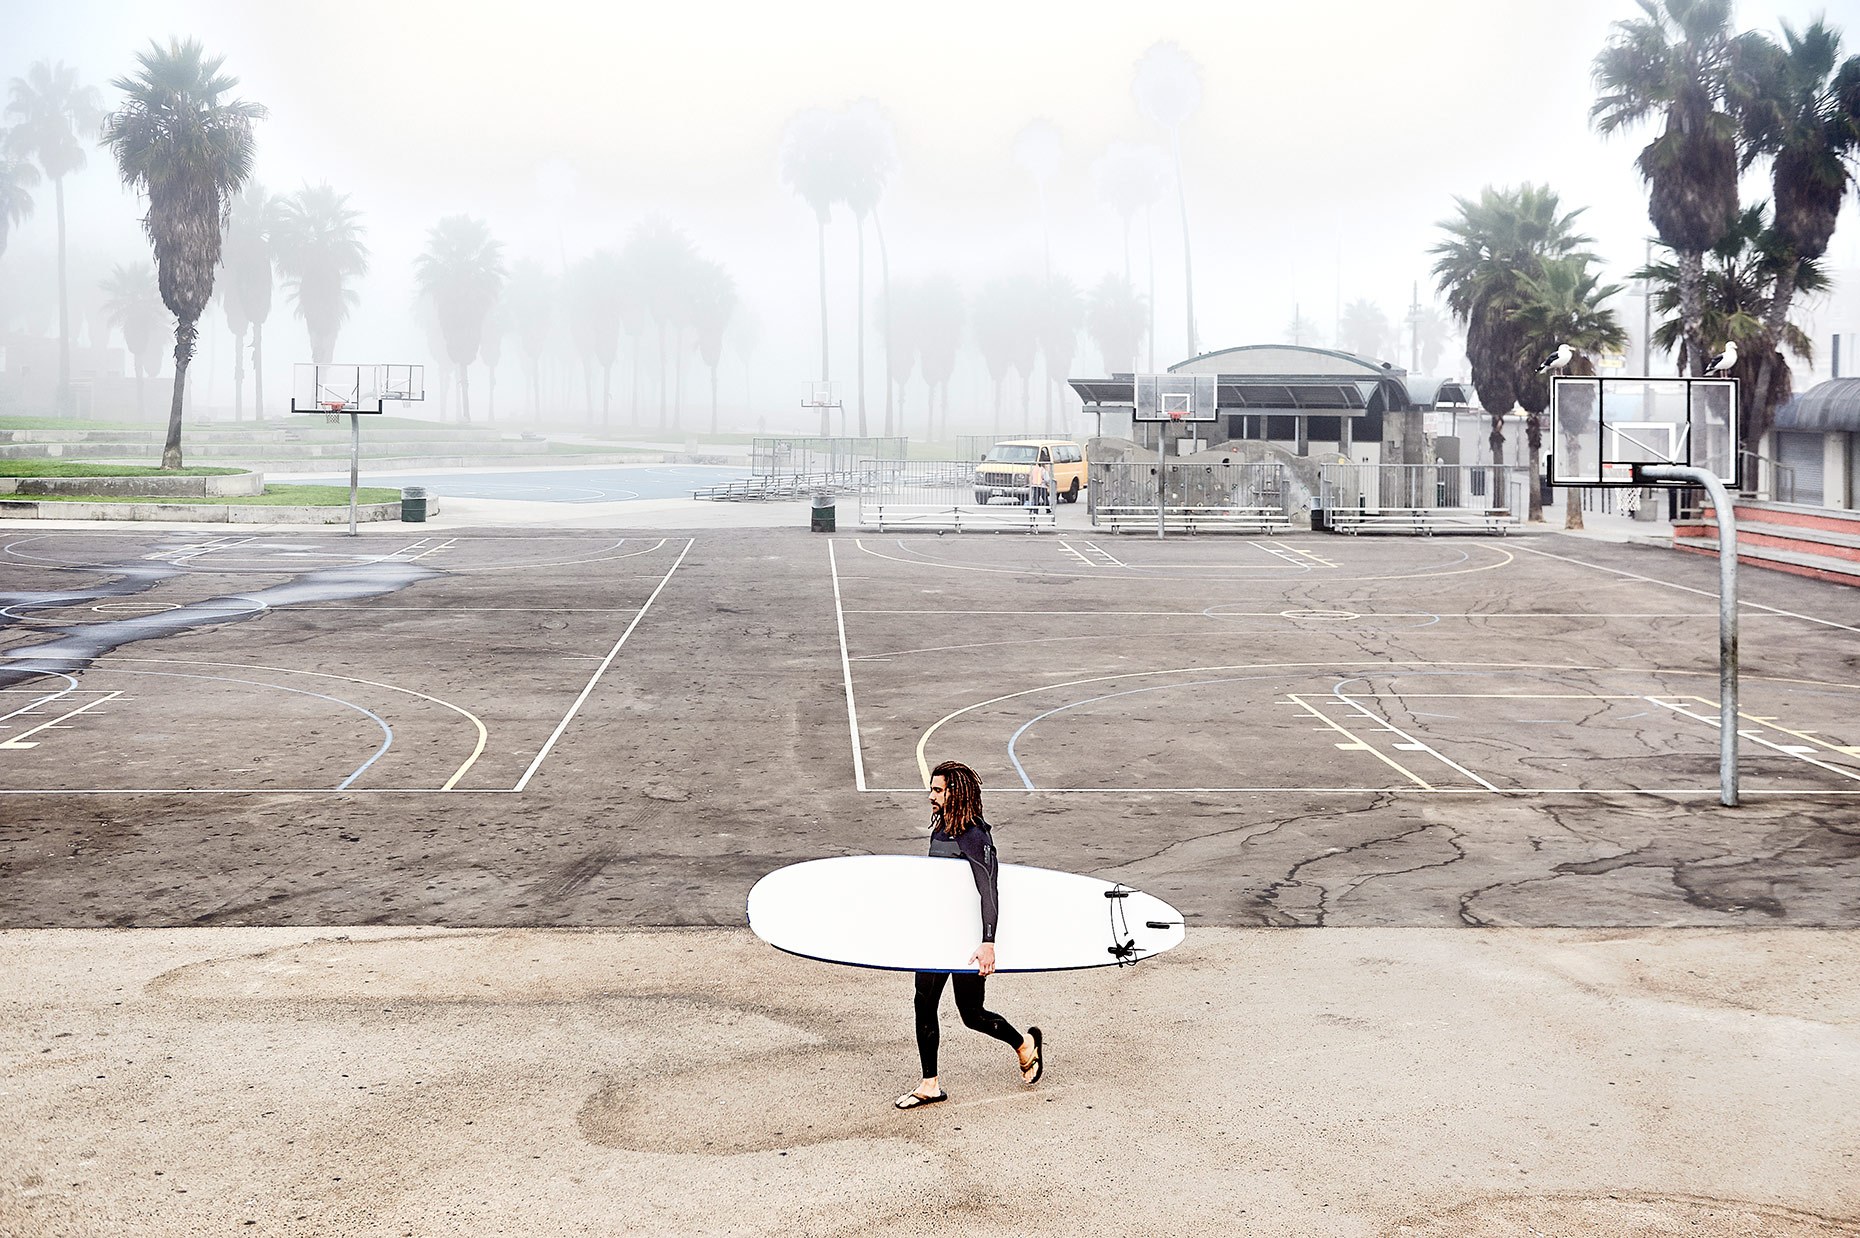 Venice Beach Dawn surfer walking across basket ball courts